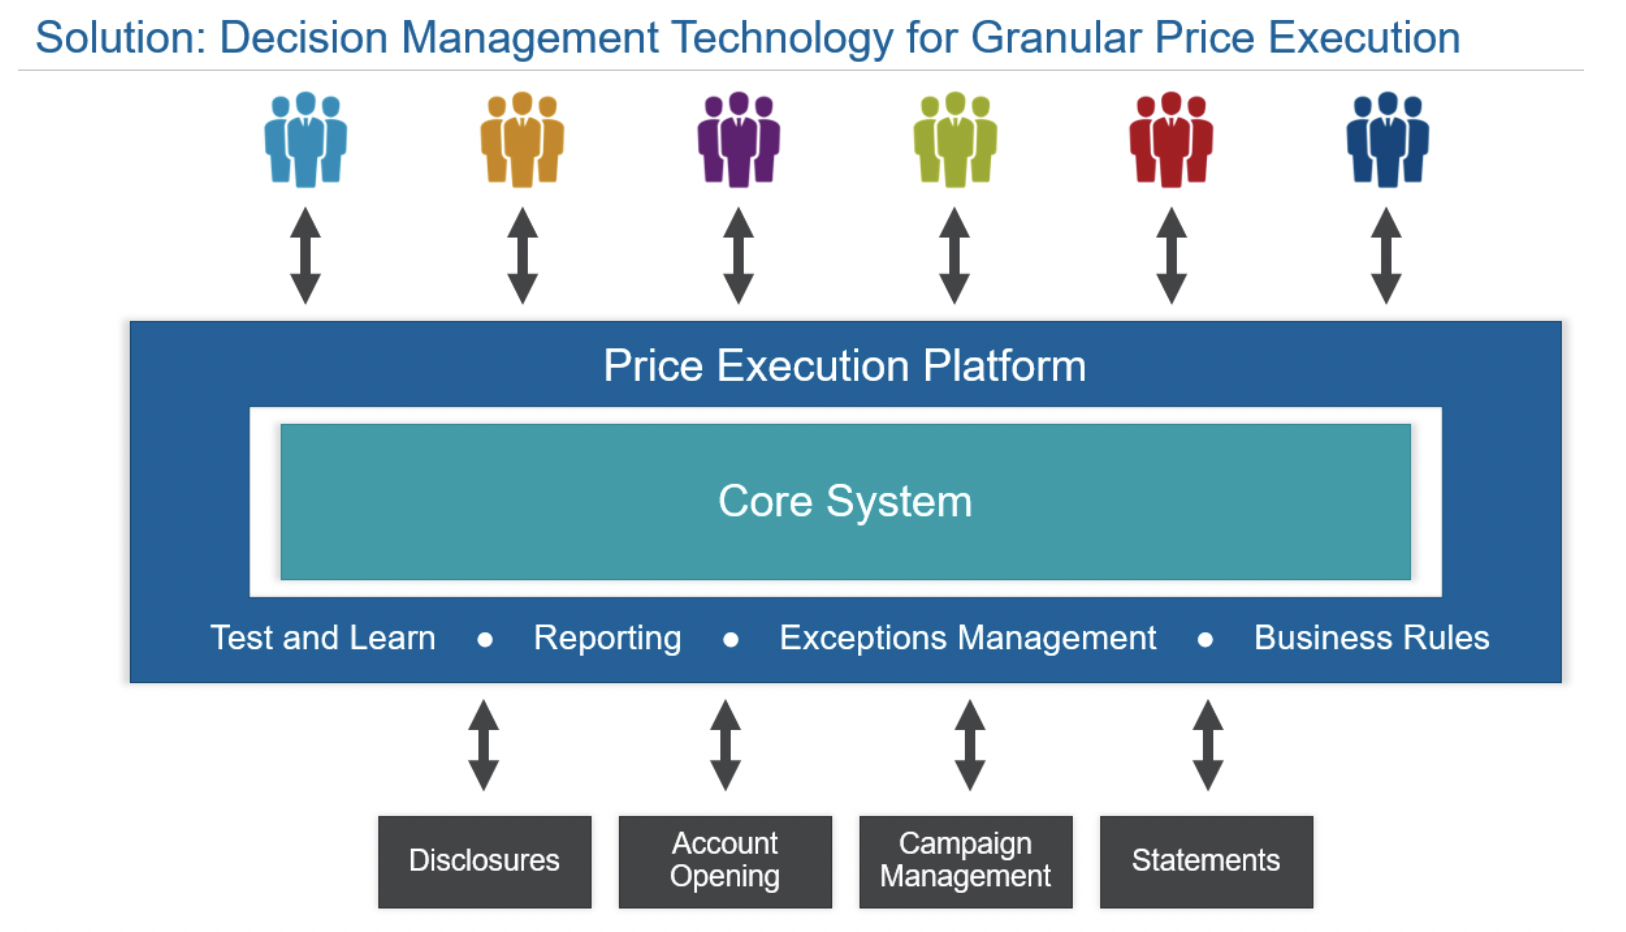 Decision Management Technology for Granular Price Execution